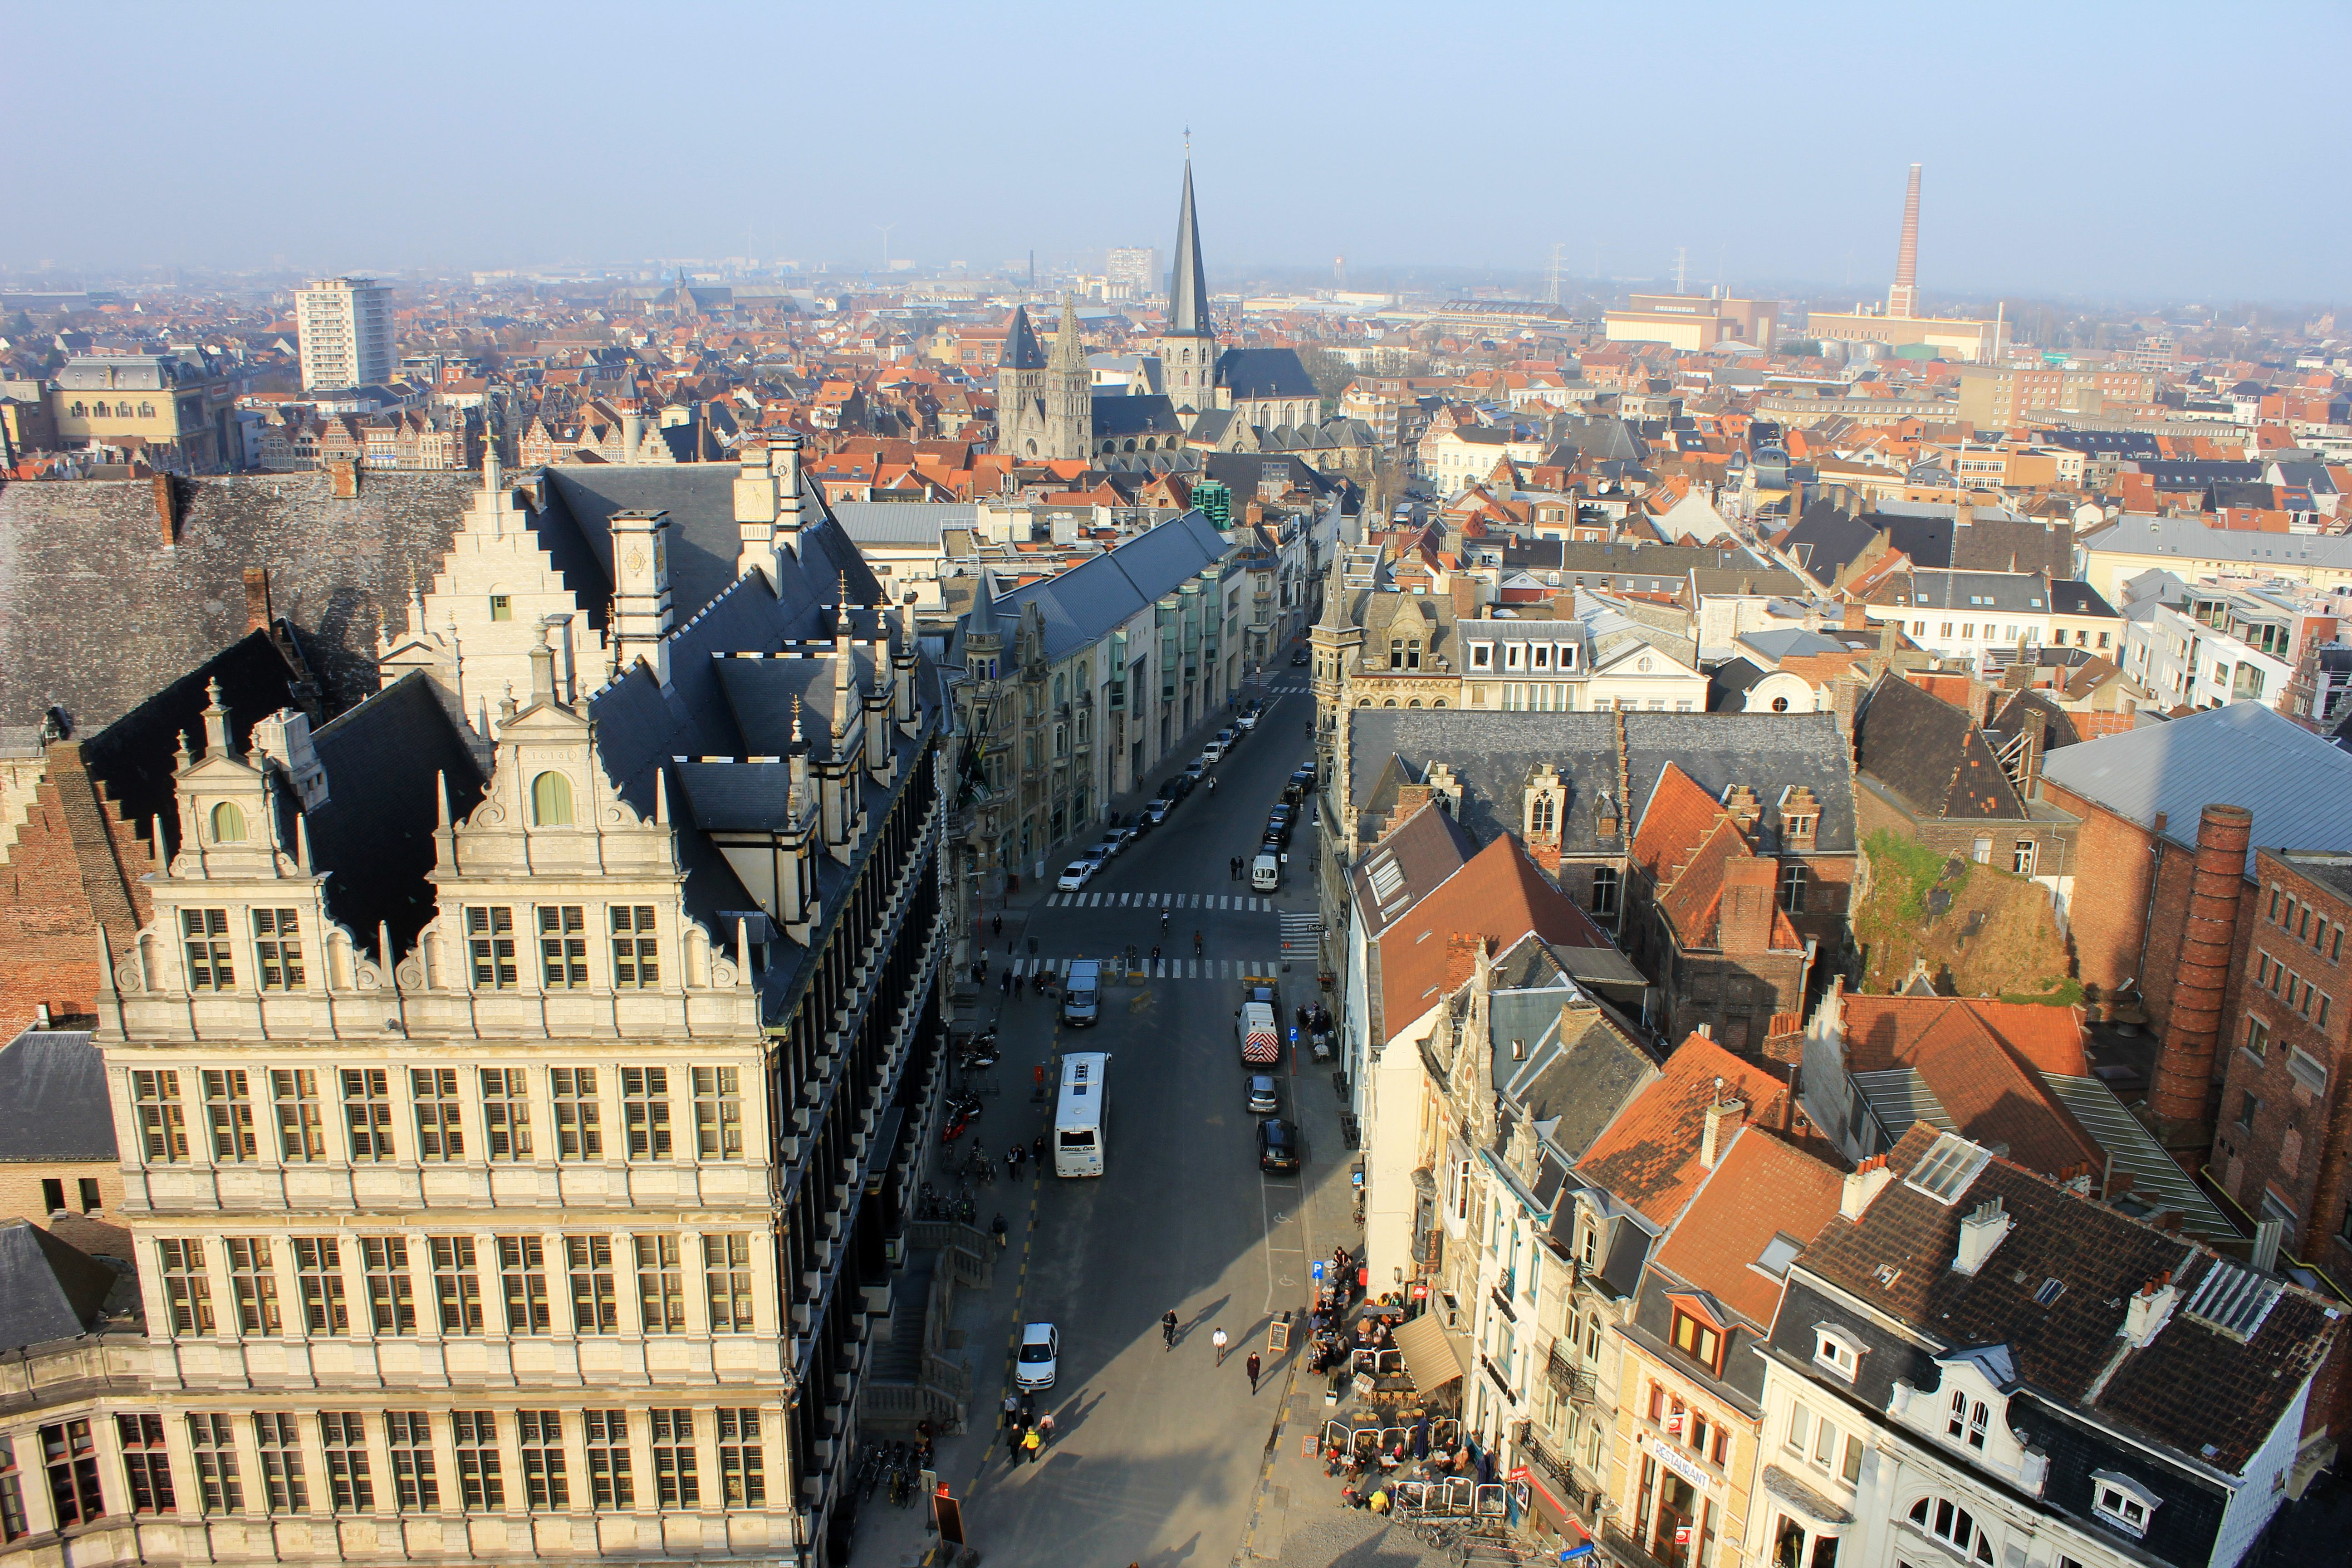 Ghent is a city with a population of a quarter of a million